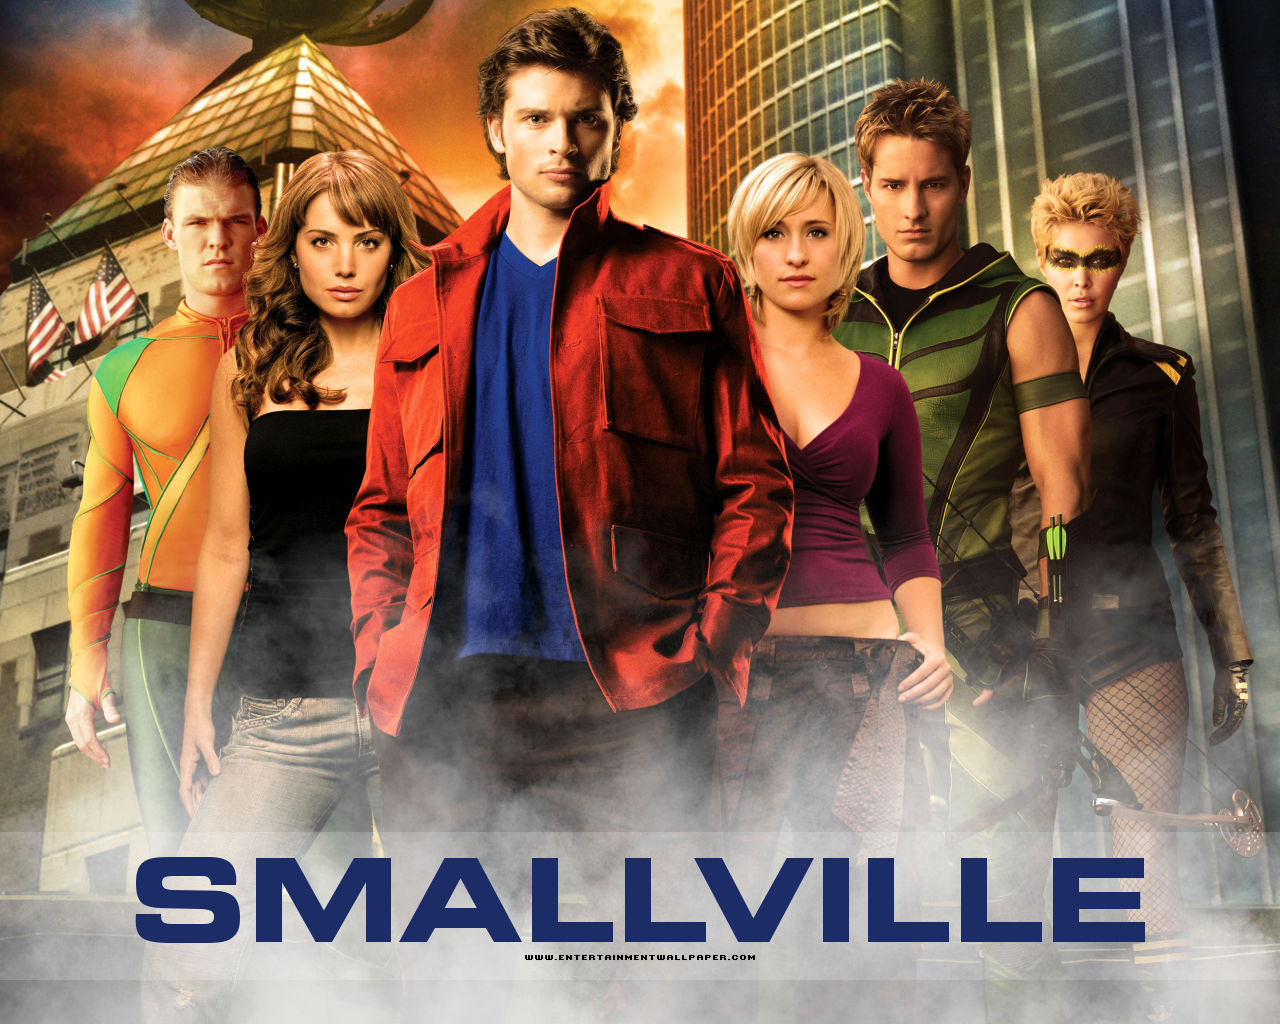 smallville smallville wallpaper 3036511 fanpop